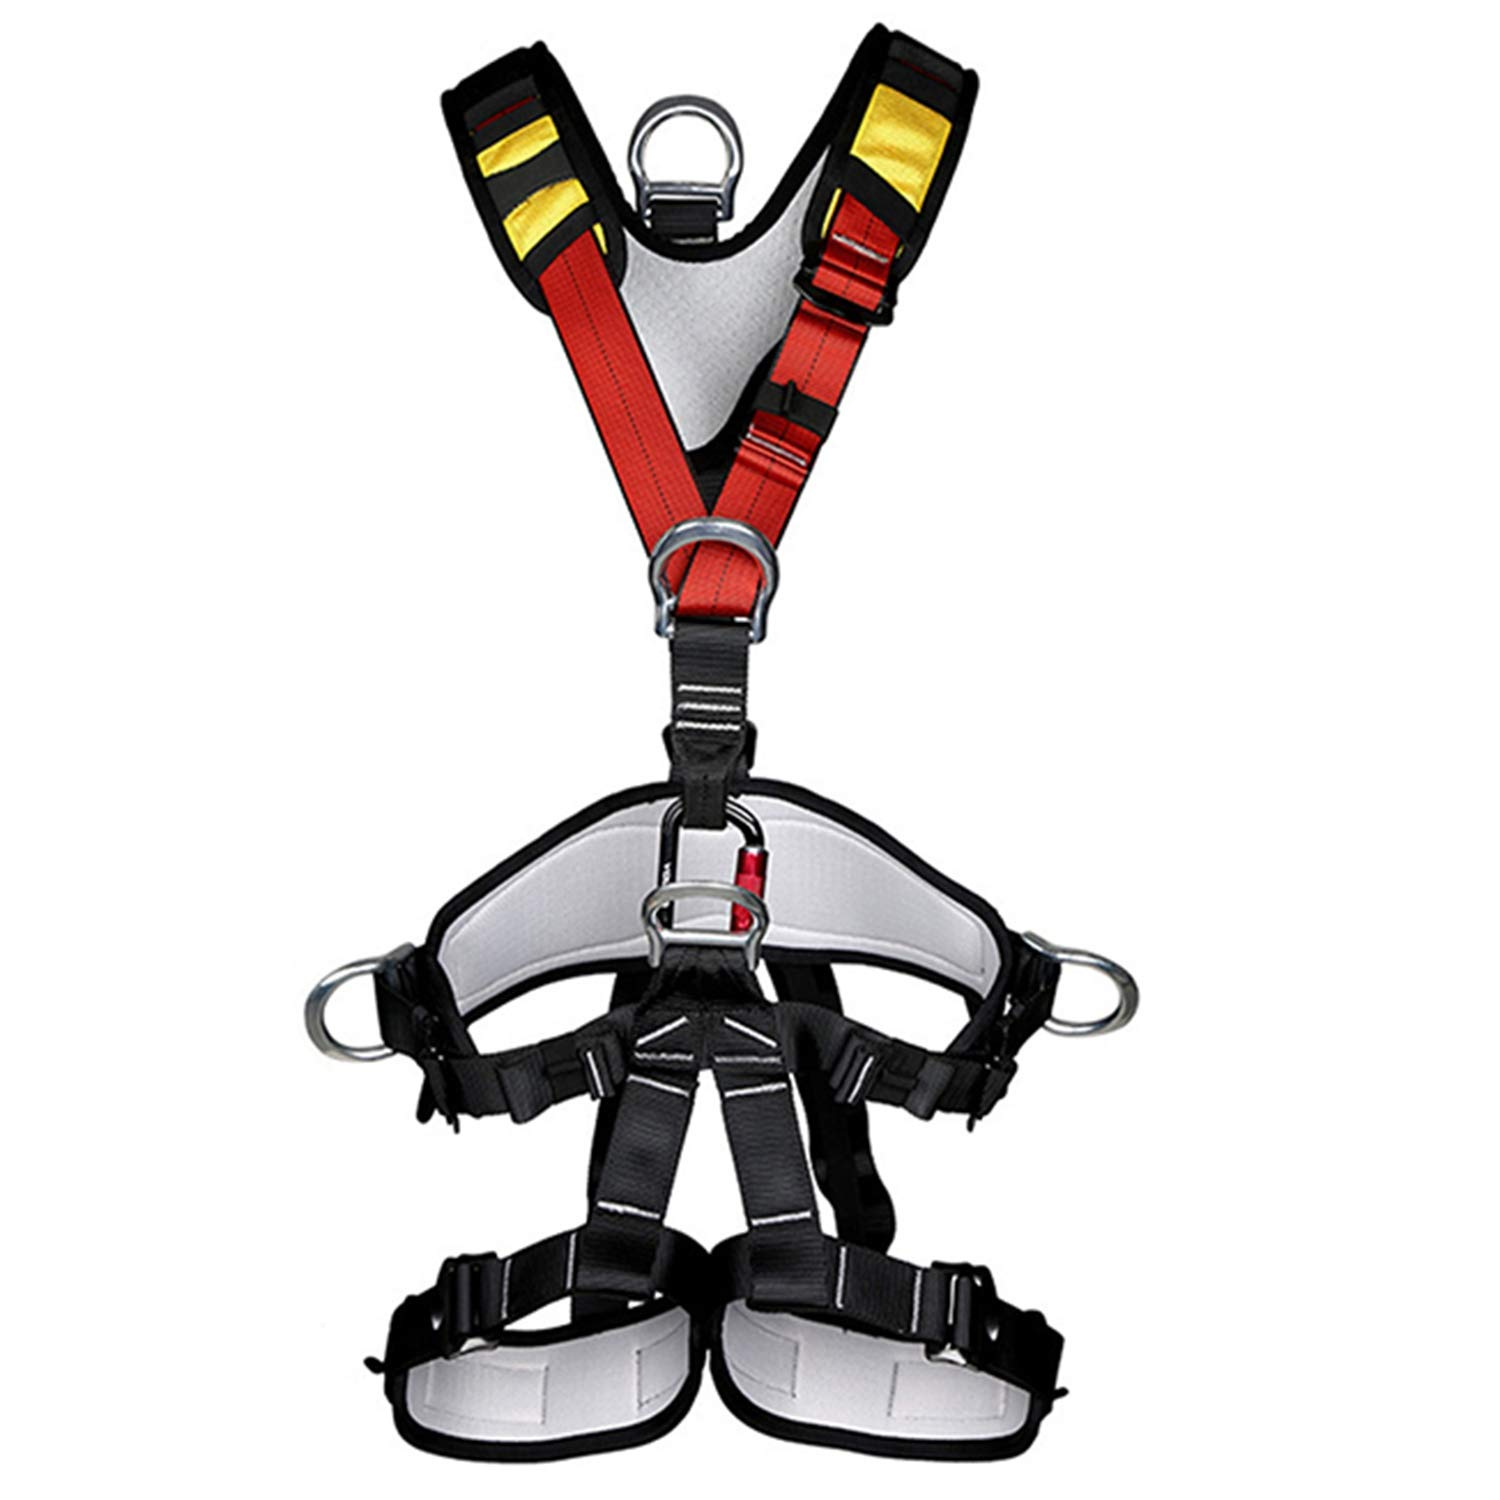 Nrpfell Outdoor Climbing Rock Rappelling Mountaineering Accessories Body Wearing Seat Belt Sitting Waist Bust Protection by Nrpfell (Image #6)